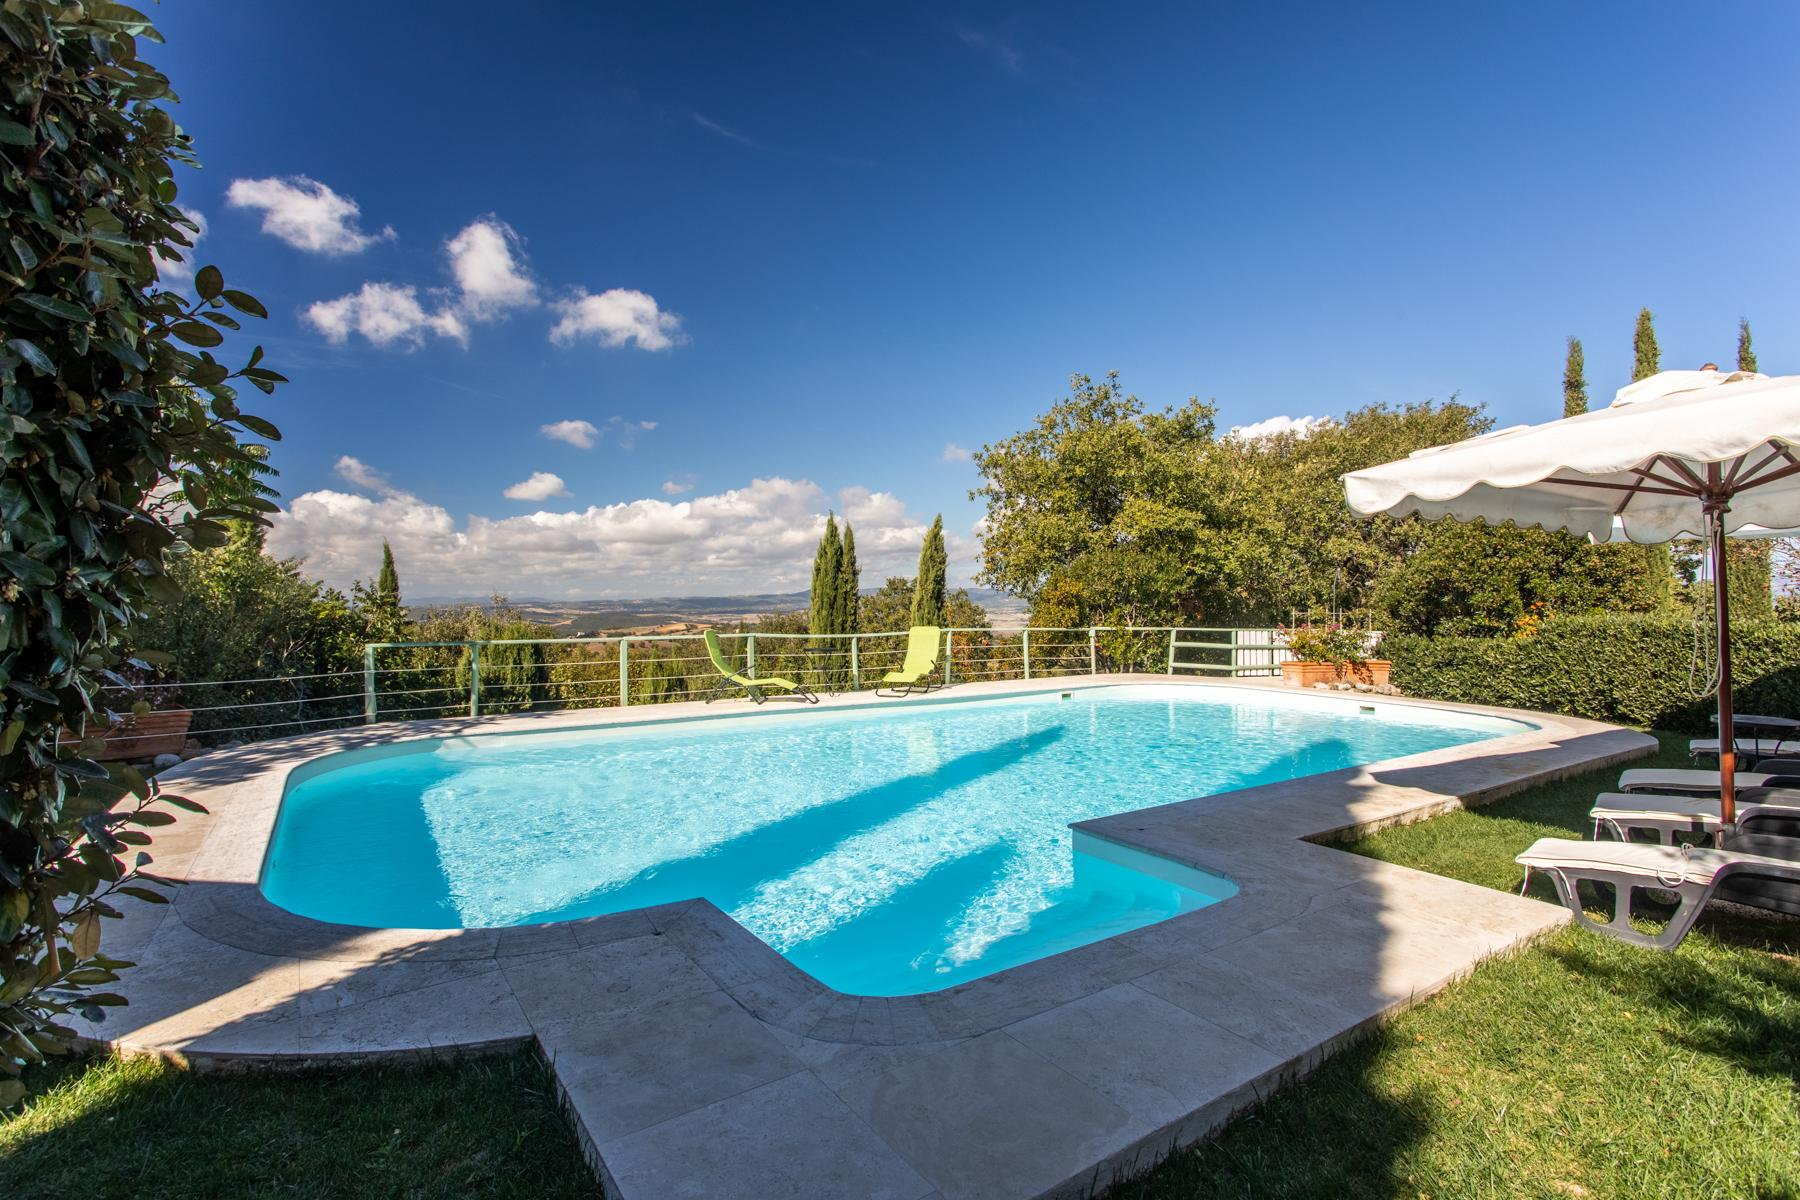 Charming farmhouse with swimming pool in the Maremma countryside - 2